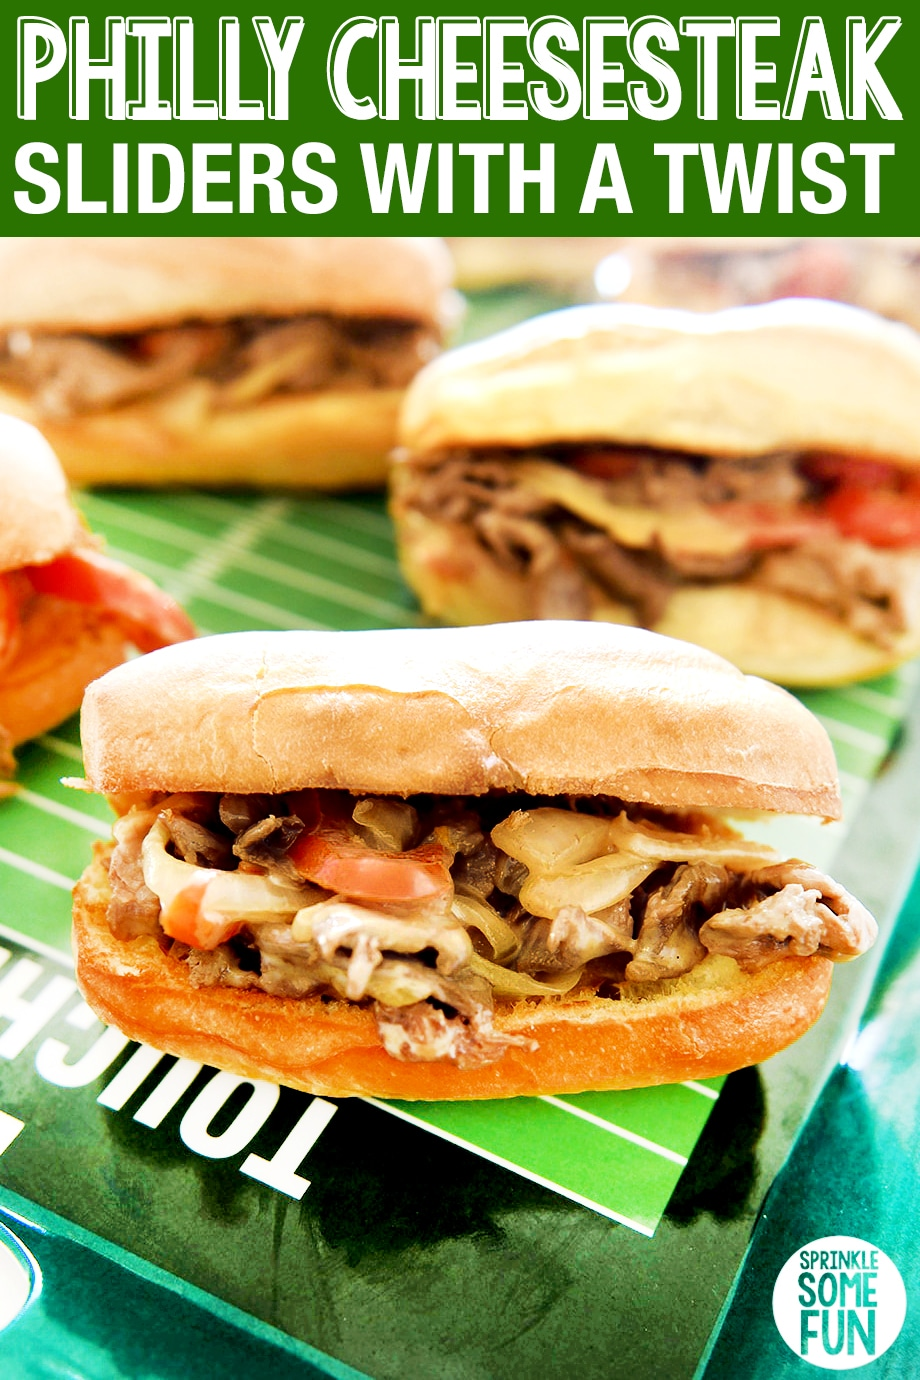 I made this recipe for Philly Cheesesteak sliders with a Twist and they are amazing. These sliders are the perfect game day food or an easy weeknight meal option. We loved the